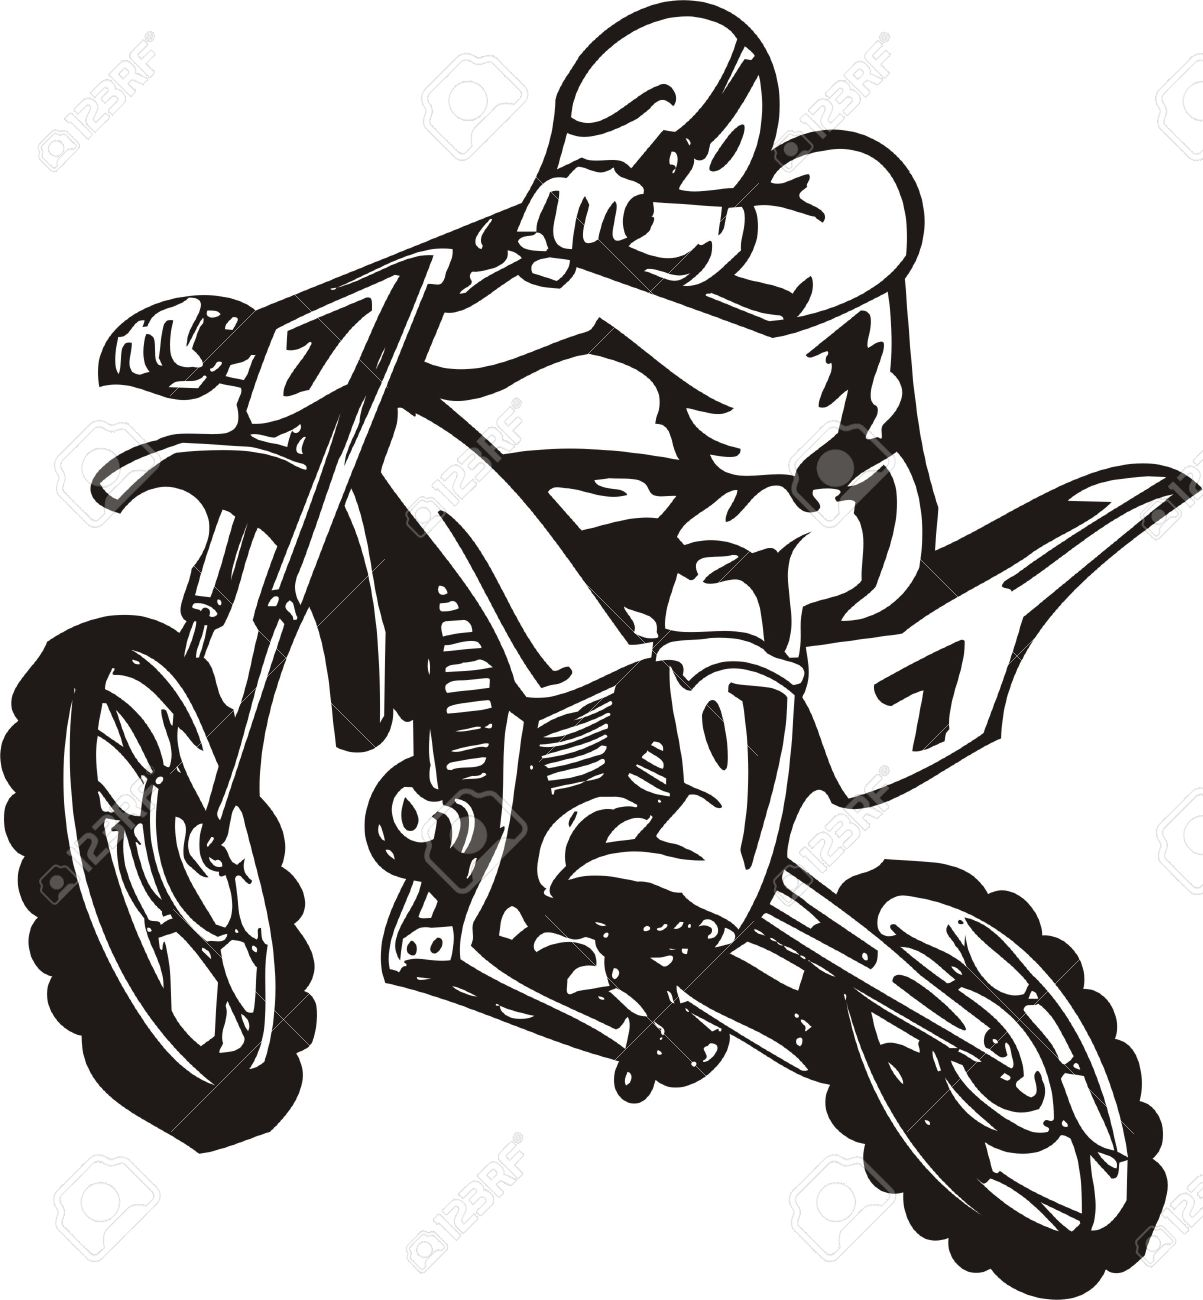 Motorcycle Vector Free Download Clip Art.